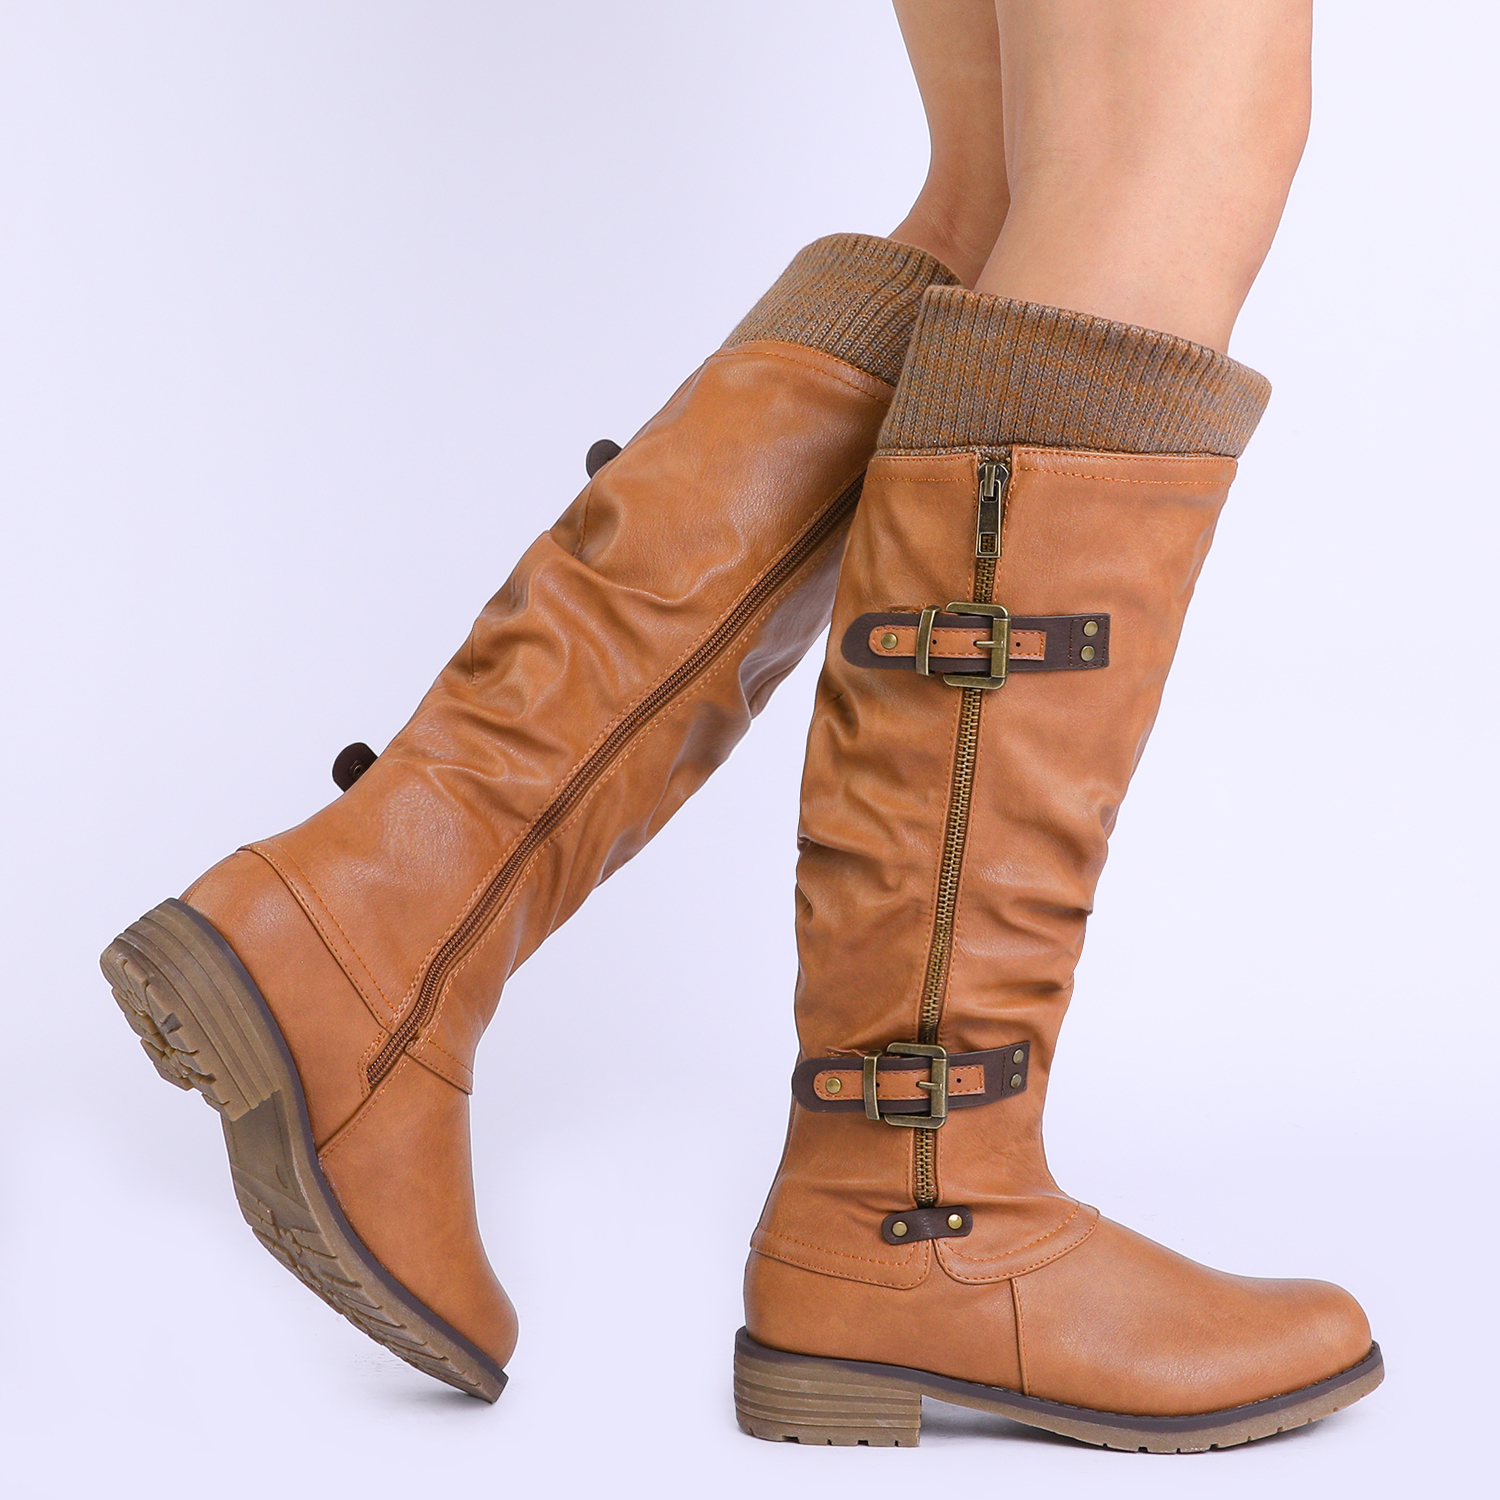 DREAM-PAIRS-Womens-DEPP-Cowgirl-Soft-PU-Leather-Combat-Knee-High-Riding-Boots thumbnail 24